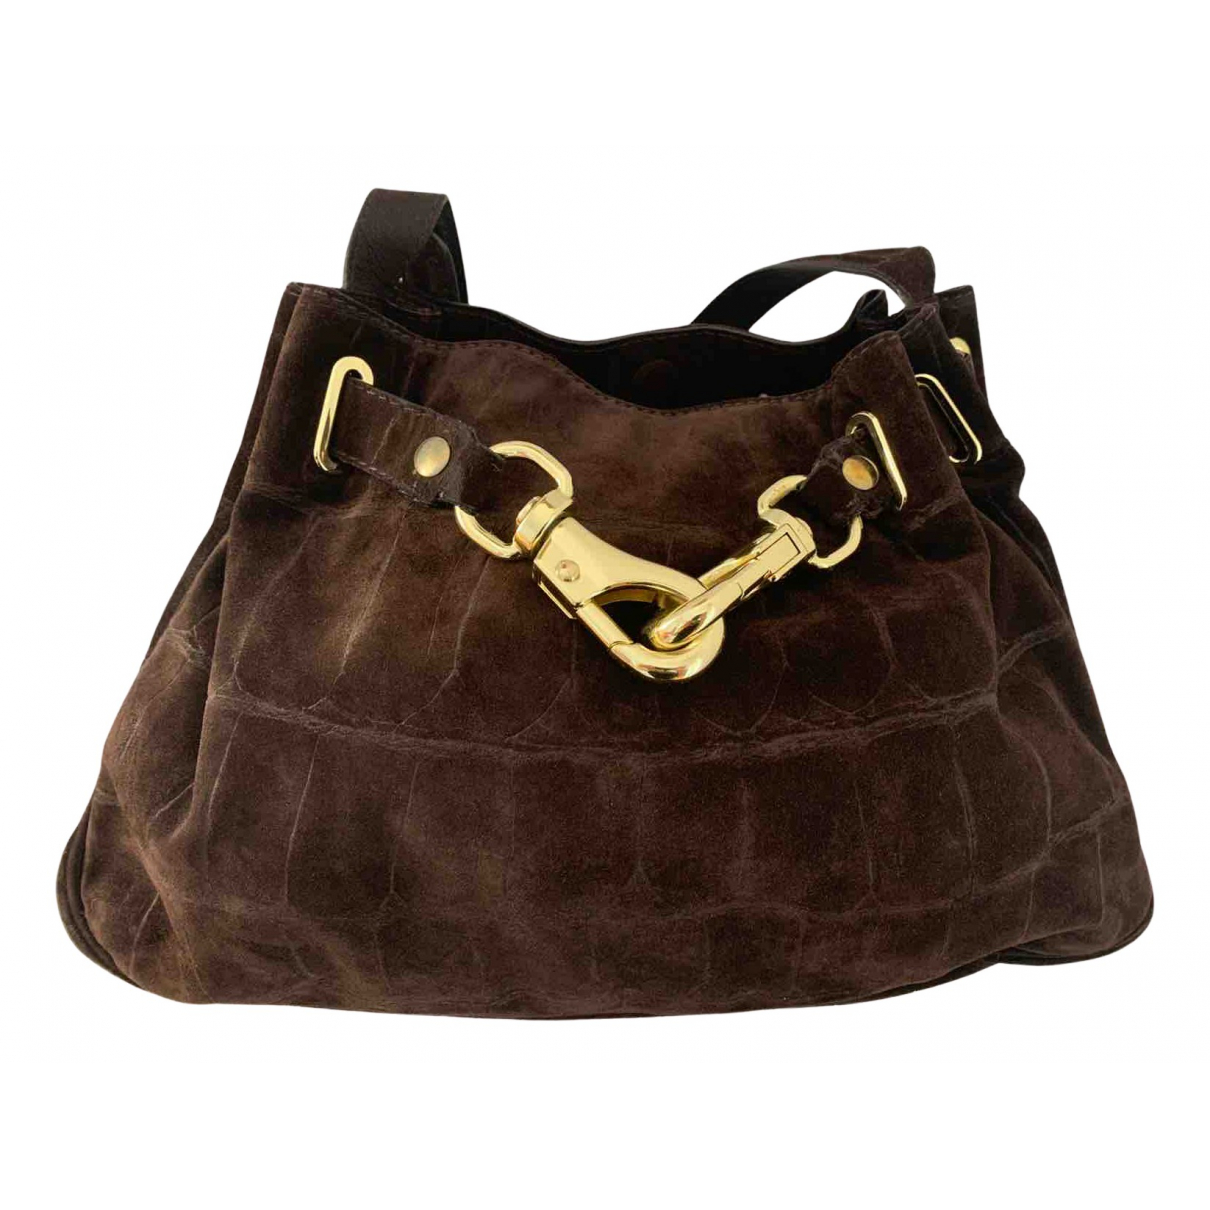 Mulberry N Brown Suede handbag for Women N